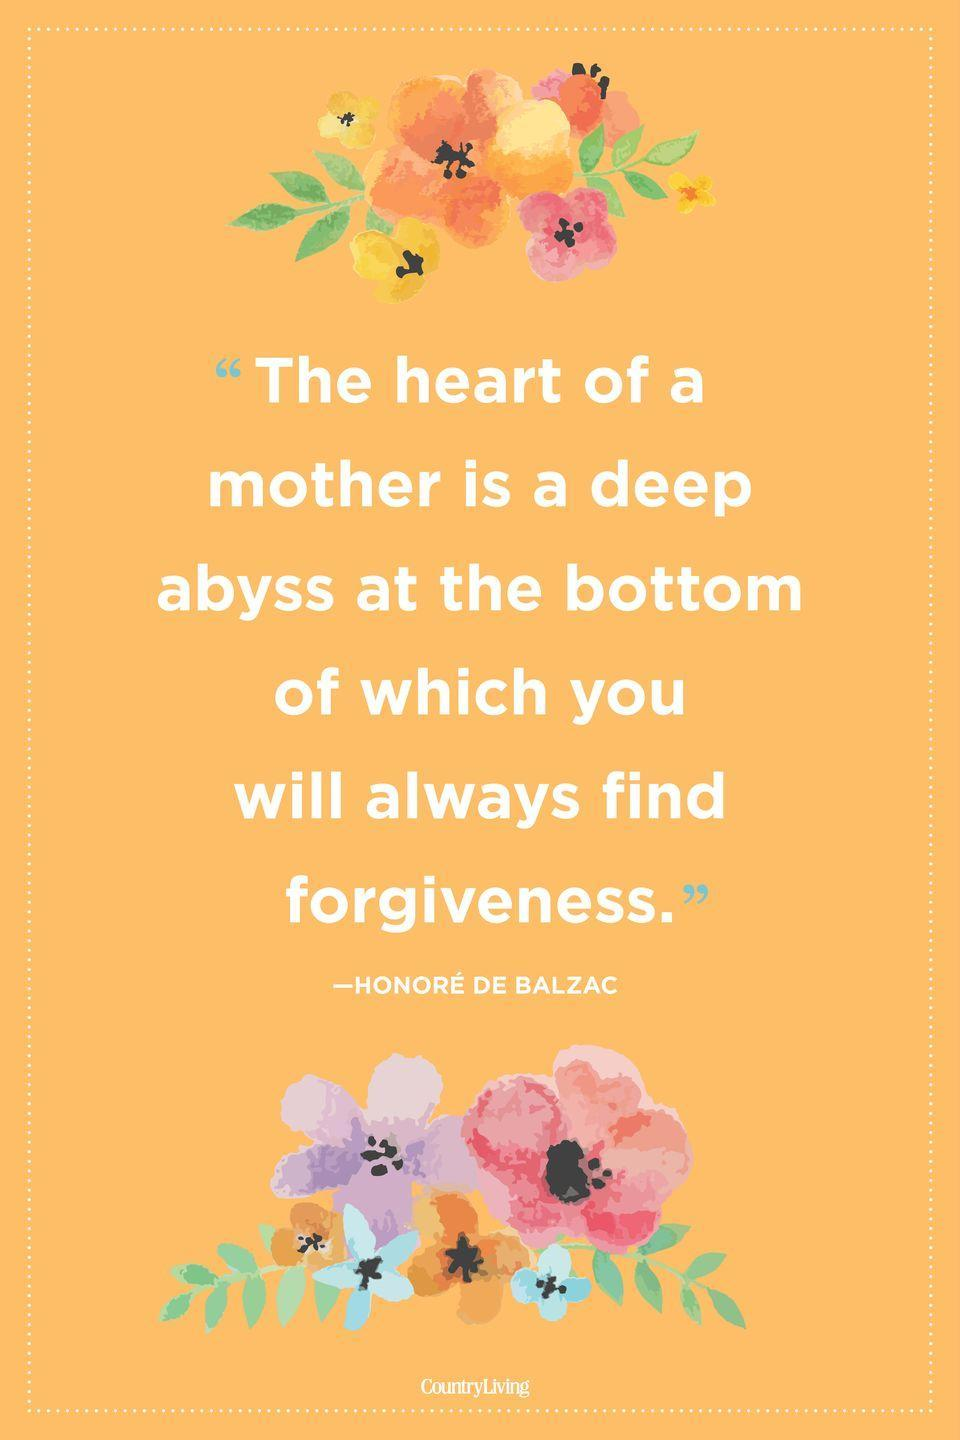 "<p>""The heart of a mother is a deep abyss at the bottom of which you will always find forgiveness."" </p>"